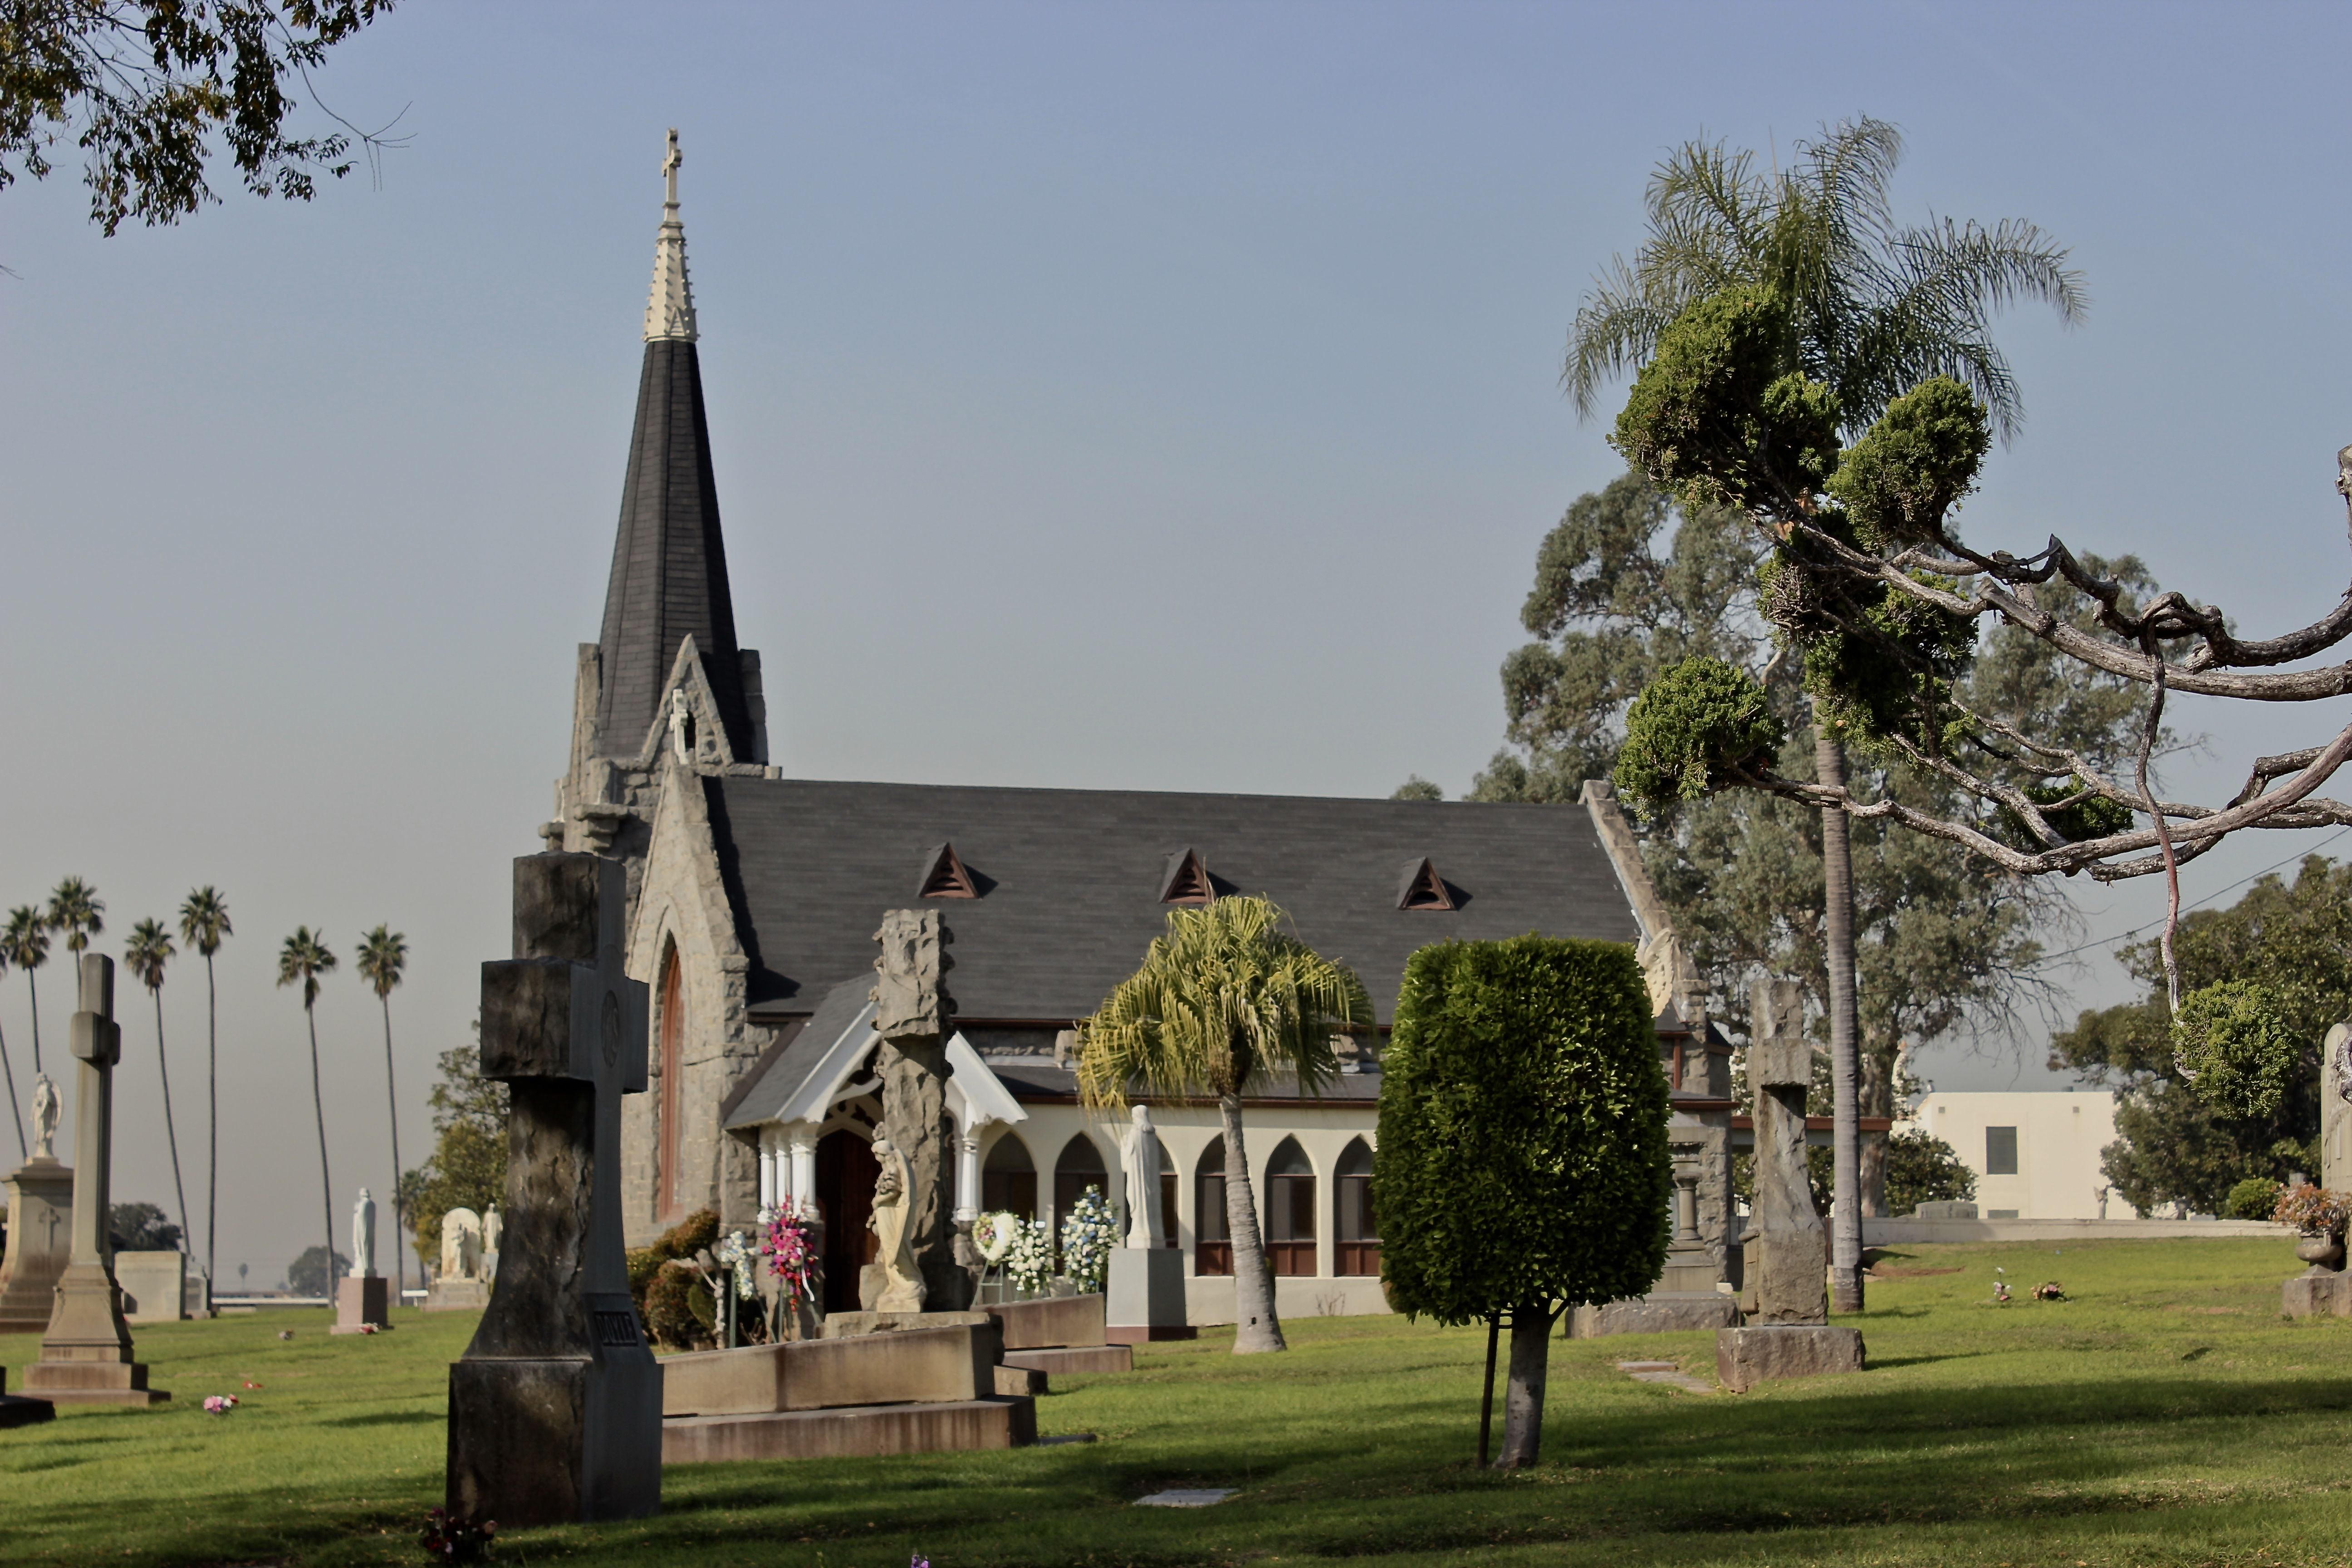 Calvary Cemetery Los Angeles Roman Catholic Cemetery That The Archdiocese Of La In The Community Of East L East Los Angeles Cemeteries Photography La History